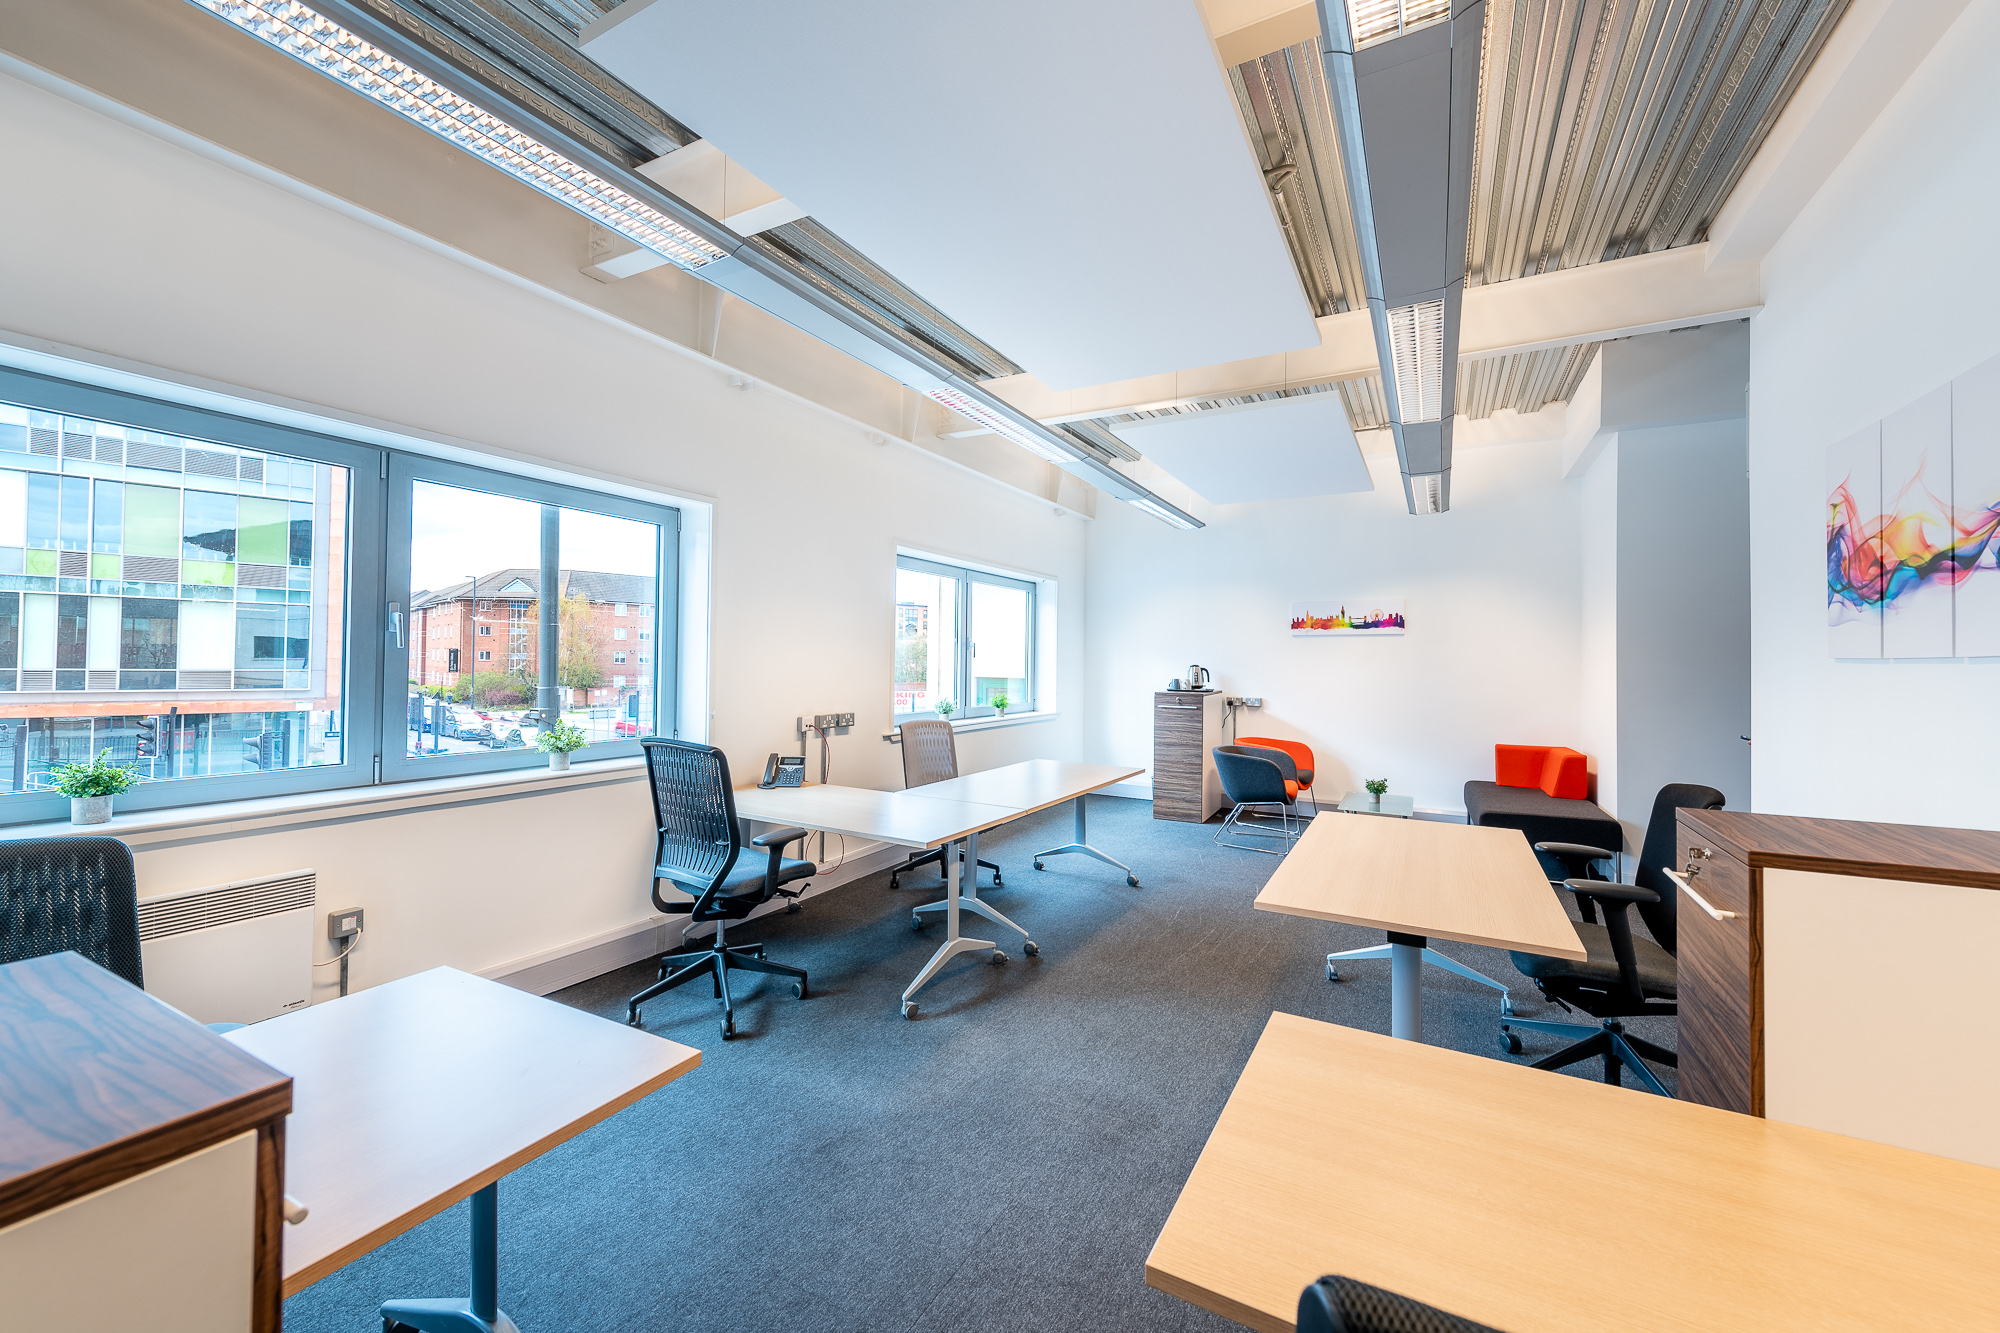 CONNECT DERBY LAUNCHES FURNISHED OFFICES AT FRIAR GATE STUDIOS